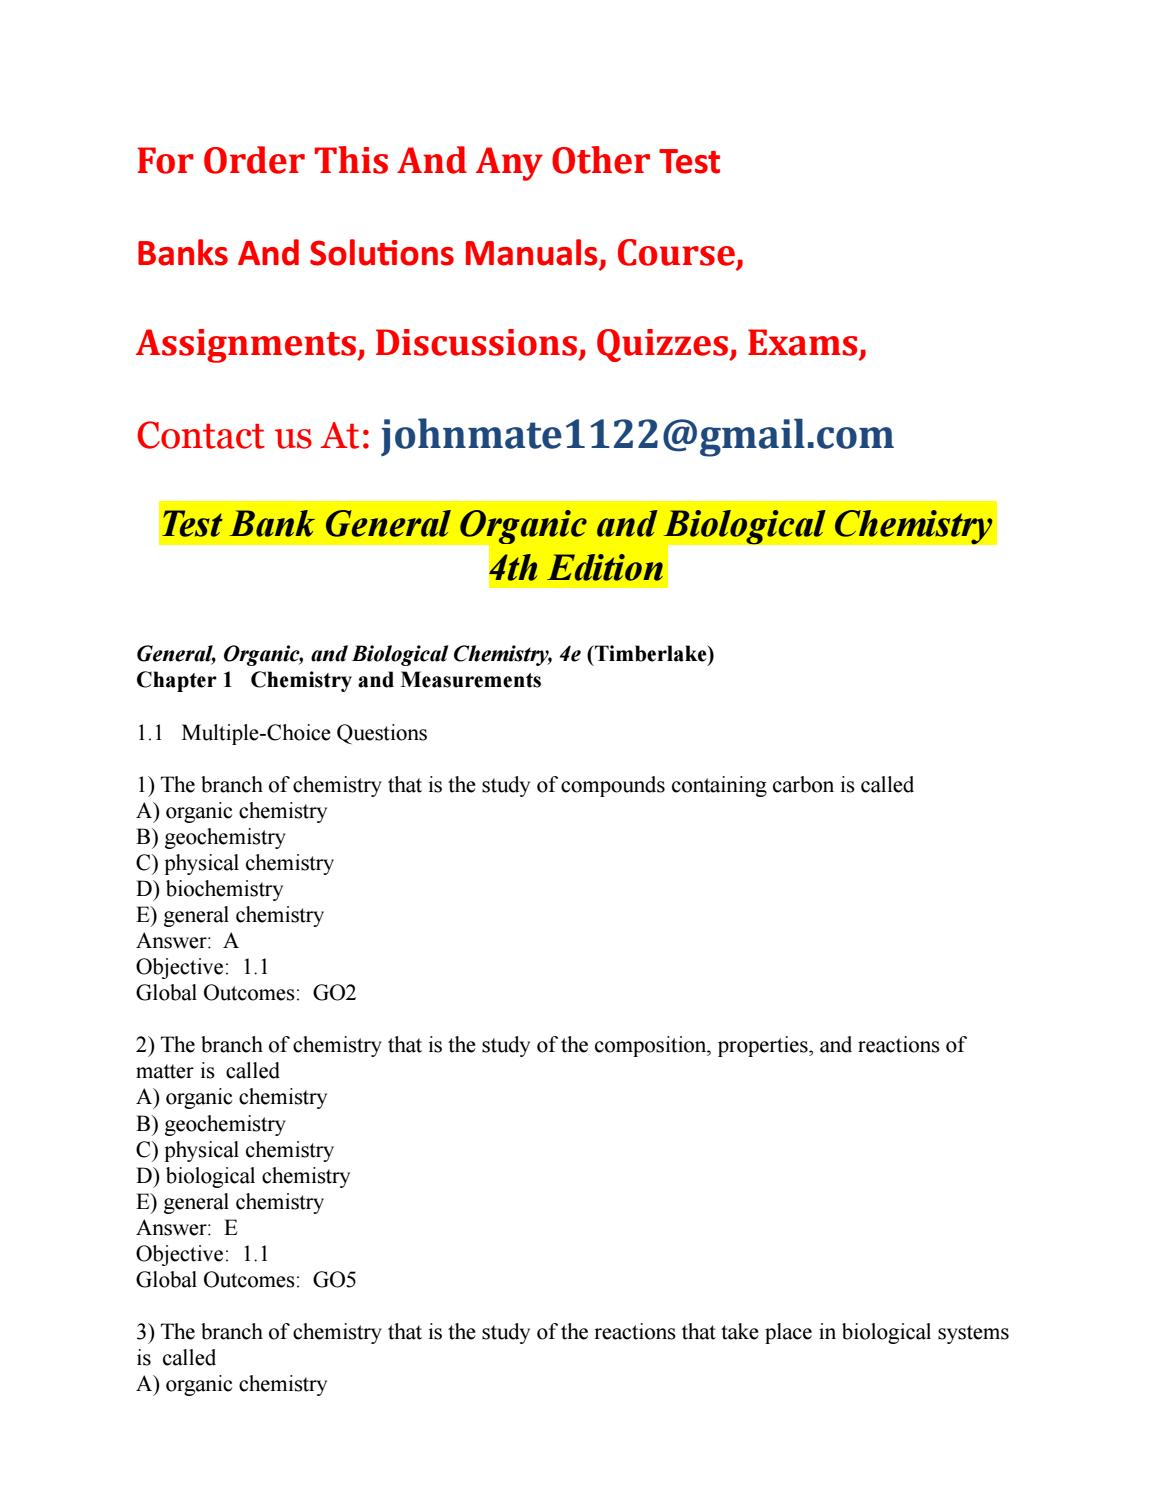 Test bank general organic and biological chemistry 4th